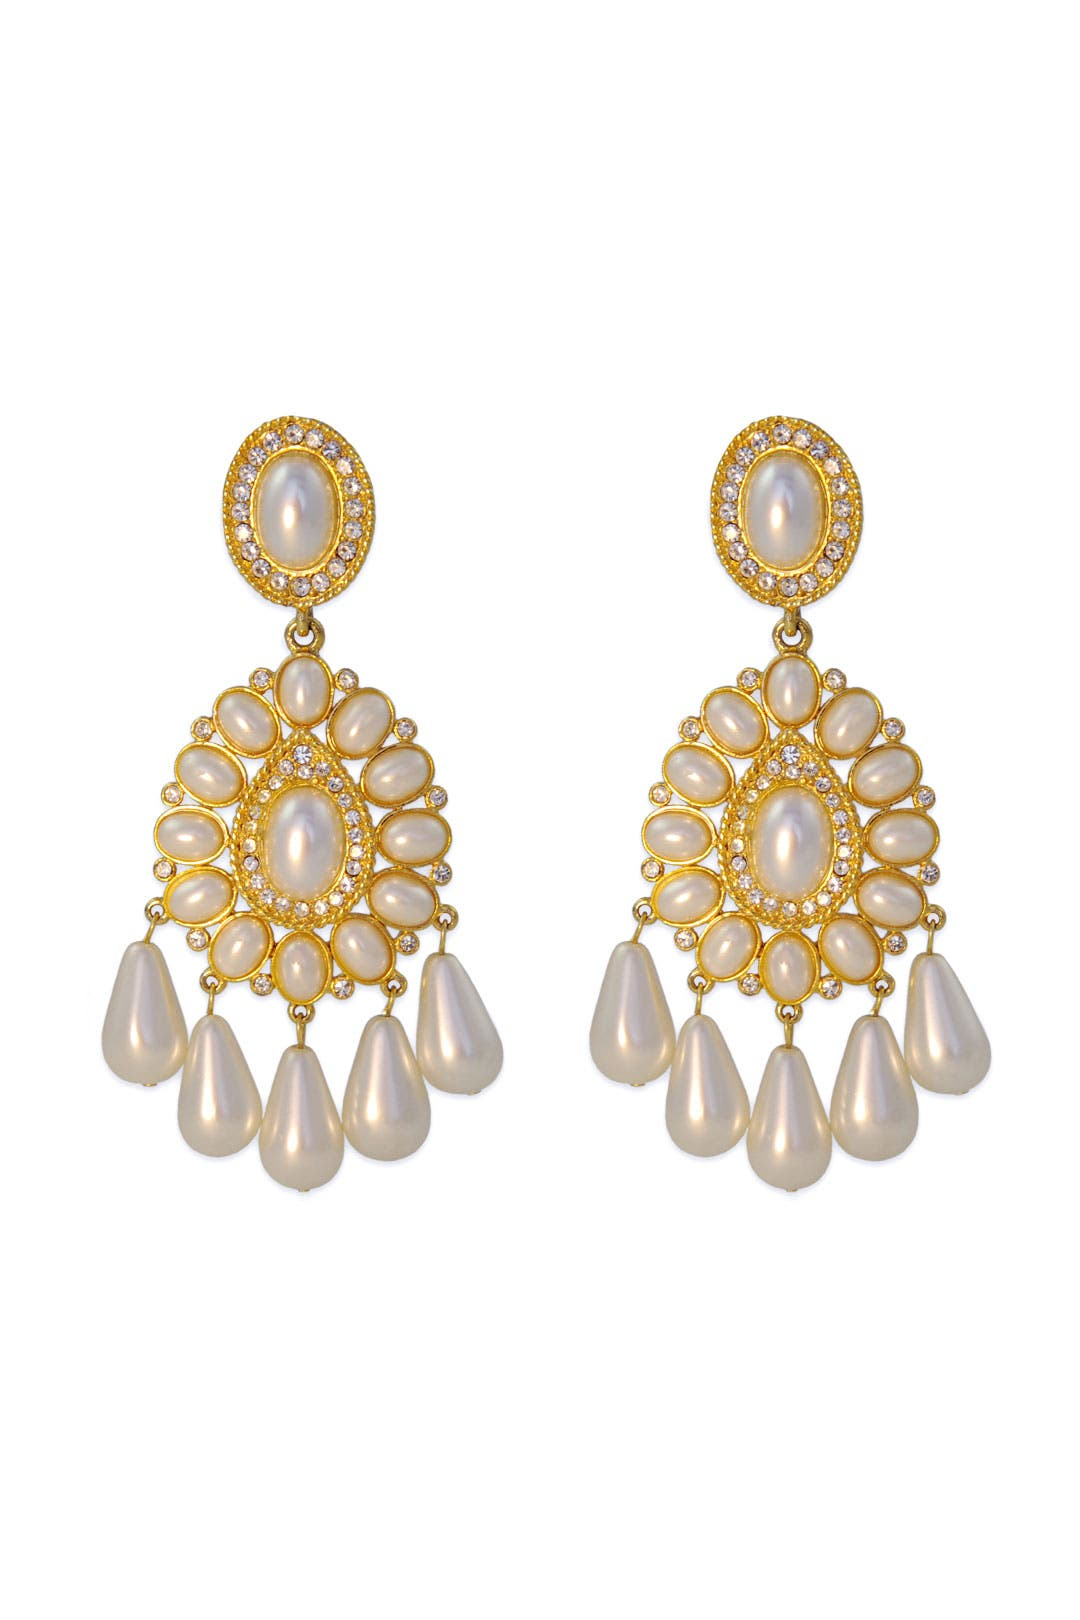 Taj Mahal Earrings by Kenneth Jay Lane